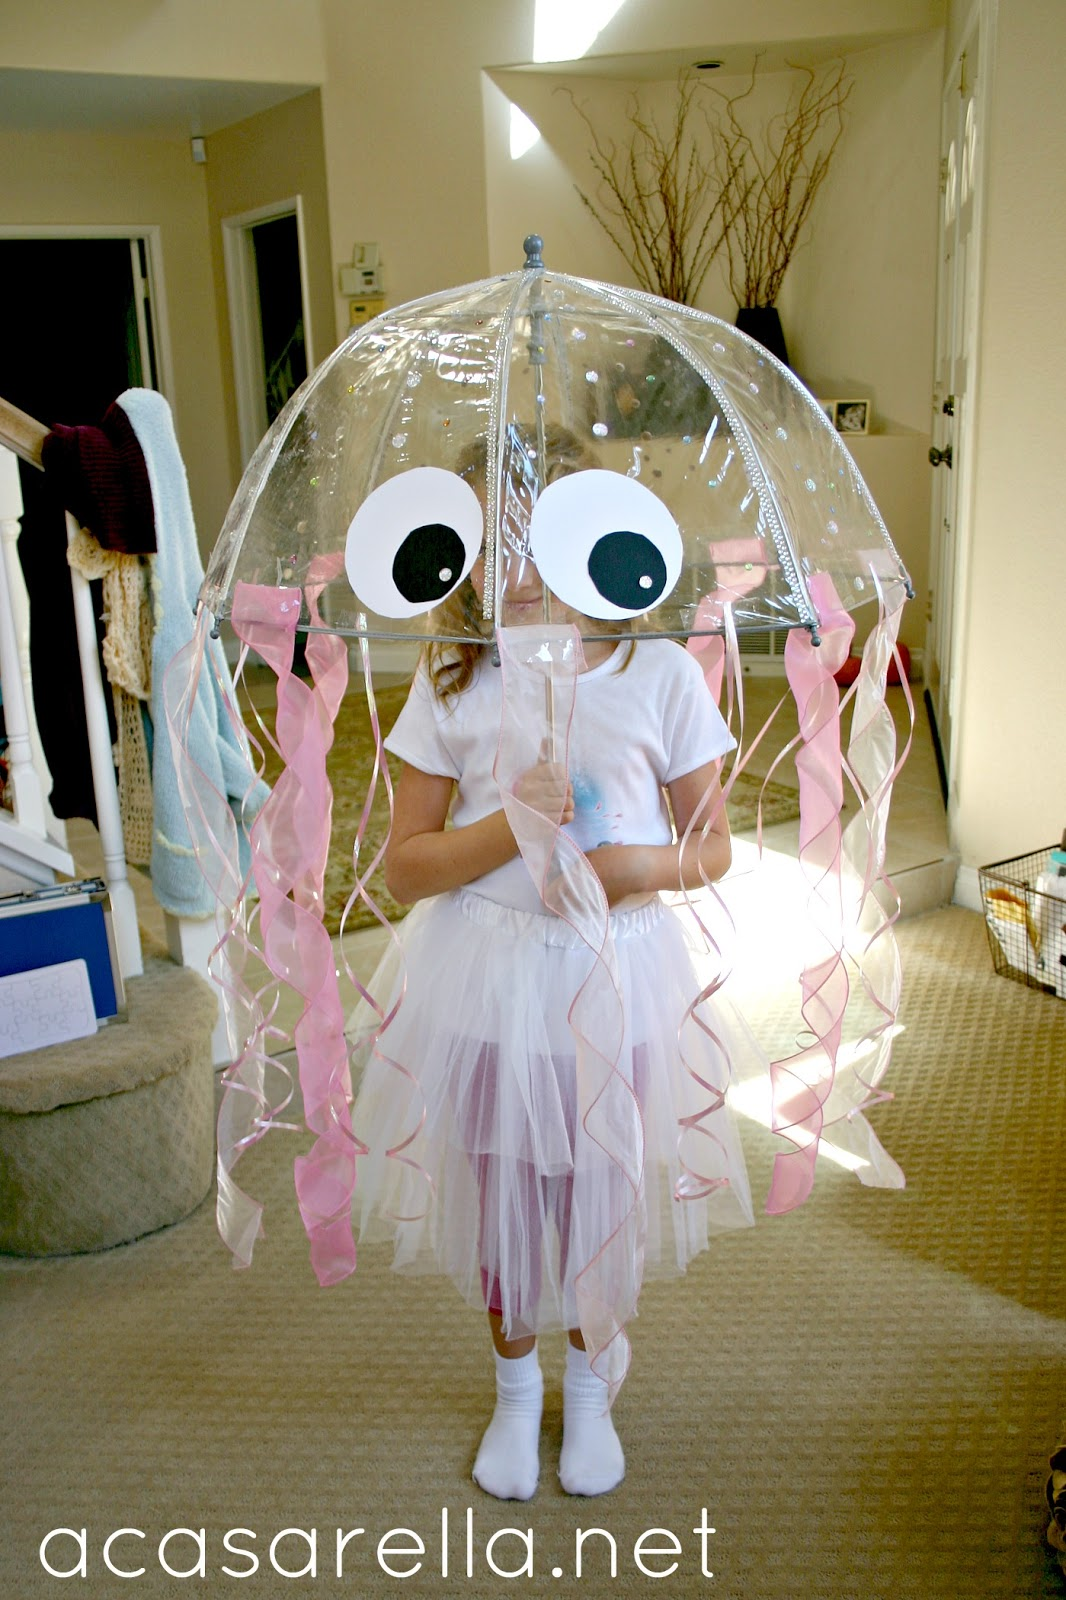 diy jellyfish costume 39 a casarella. Black Bedroom Furniture Sets. Home Design Ideas